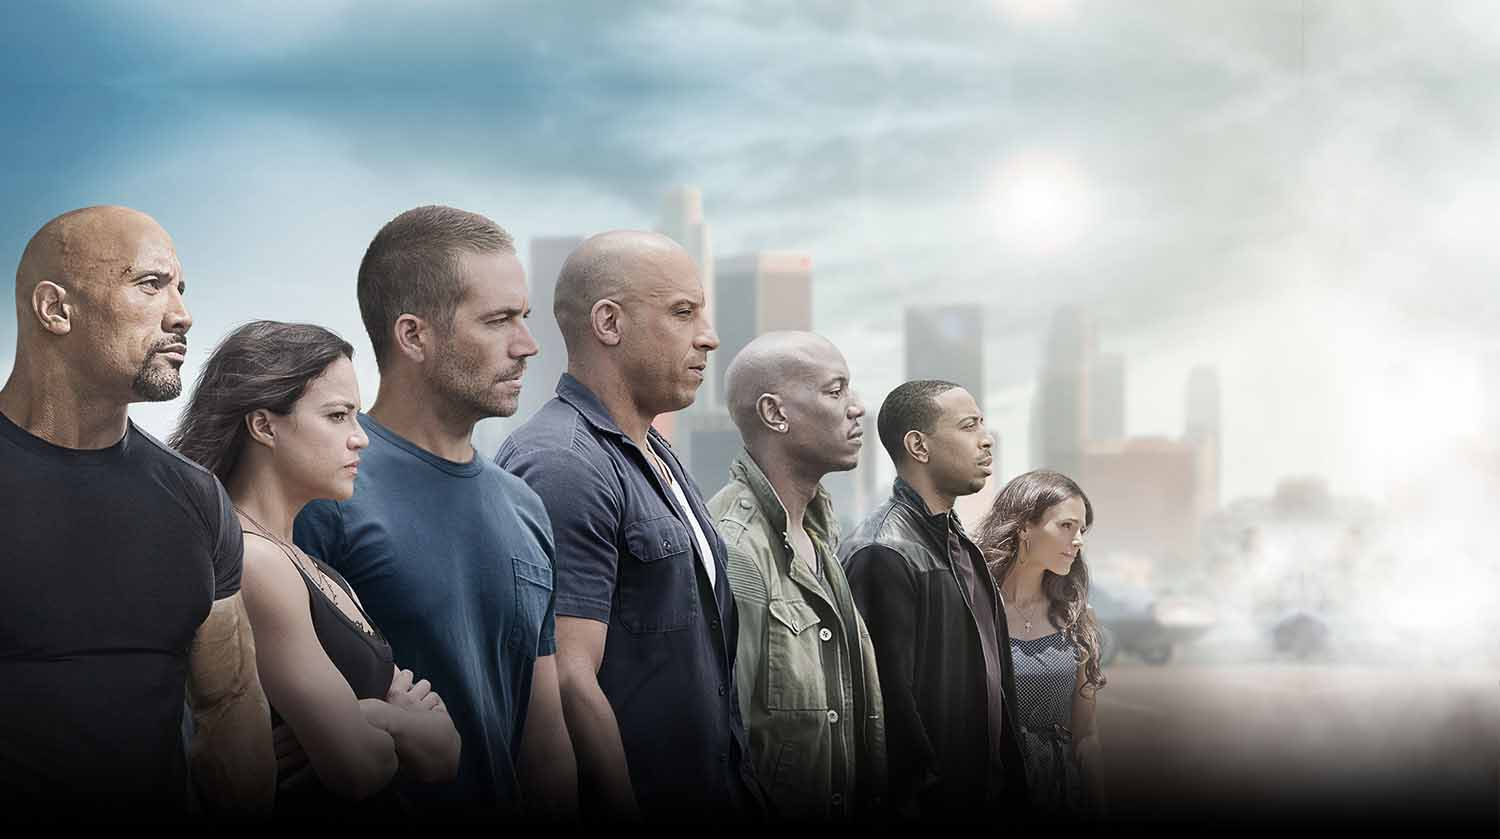 Fast and Furious 7 Wallpaper   My Wallpapers Hub 1500x839